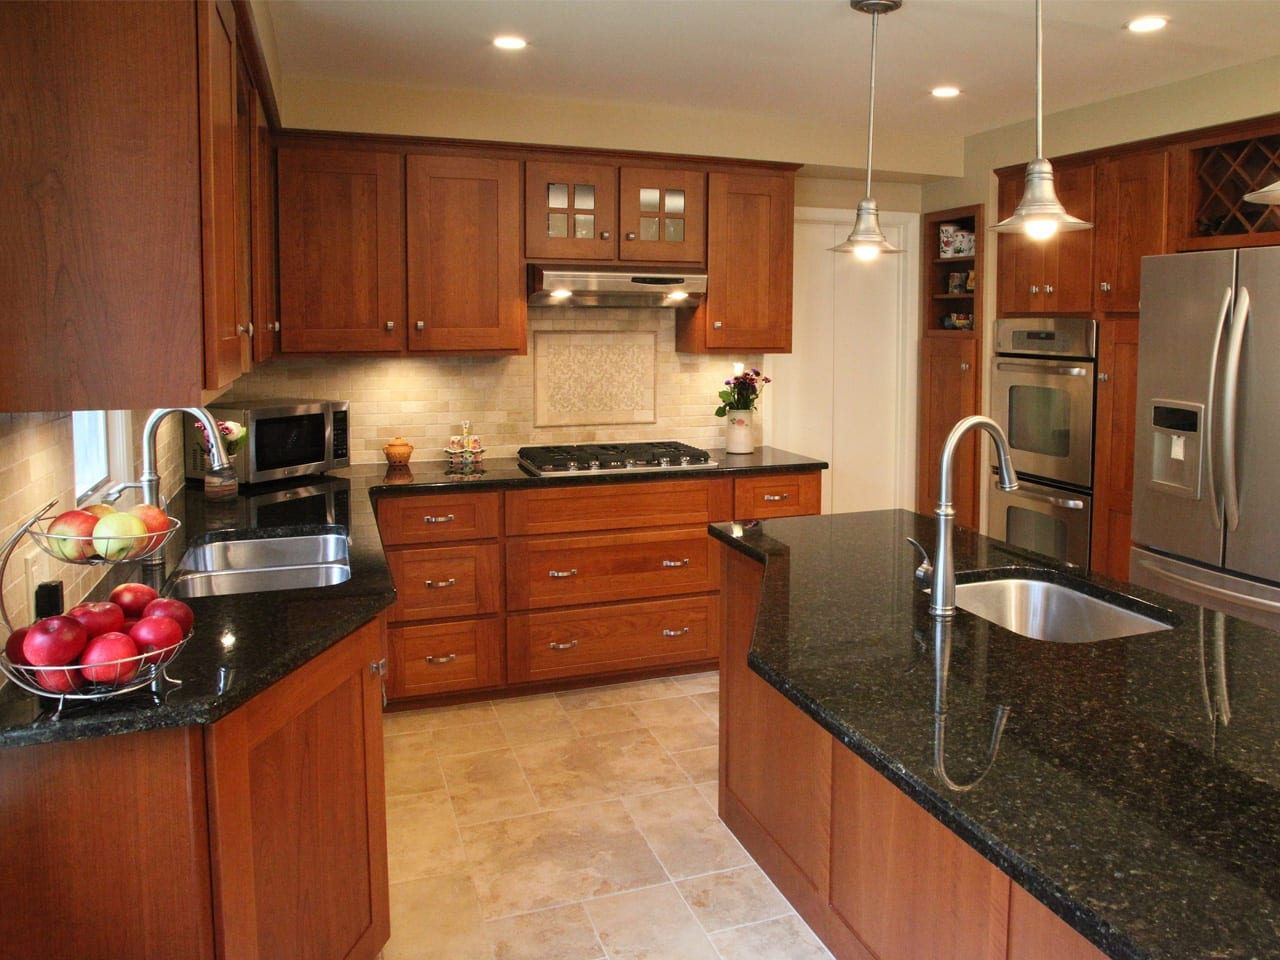 a picture of a brown kitchen after refacing featuring beautiful center island countertops with a sink